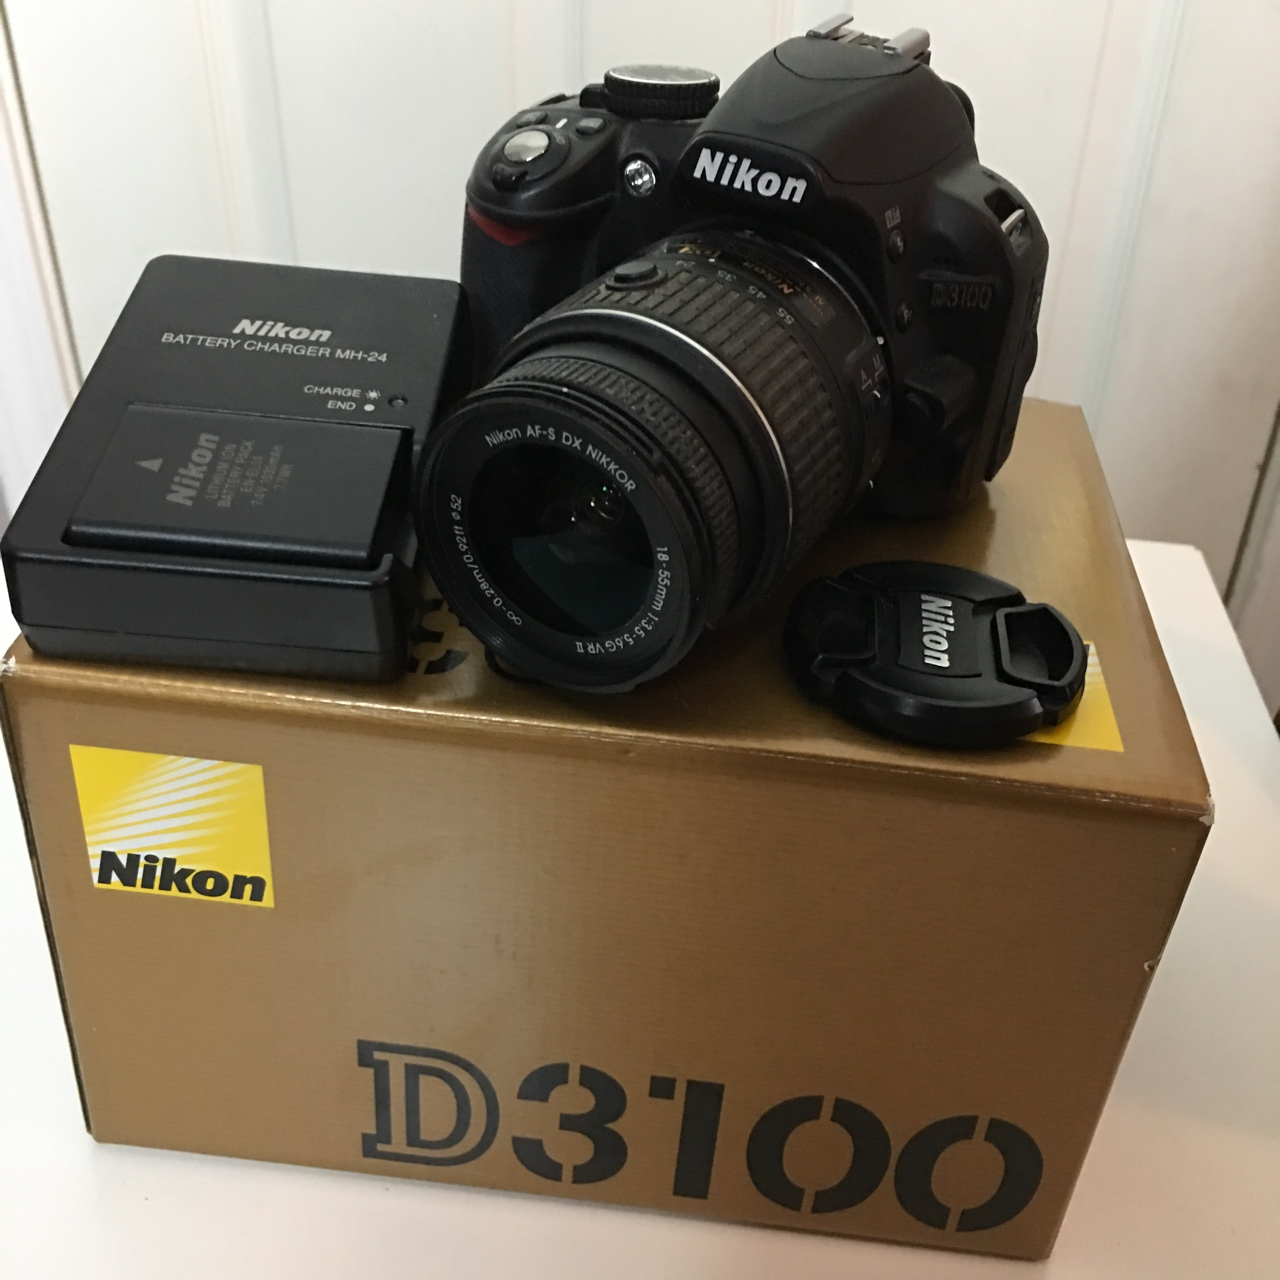 SOLD Nikon D3100 camera with box, manual, battery    - Depop